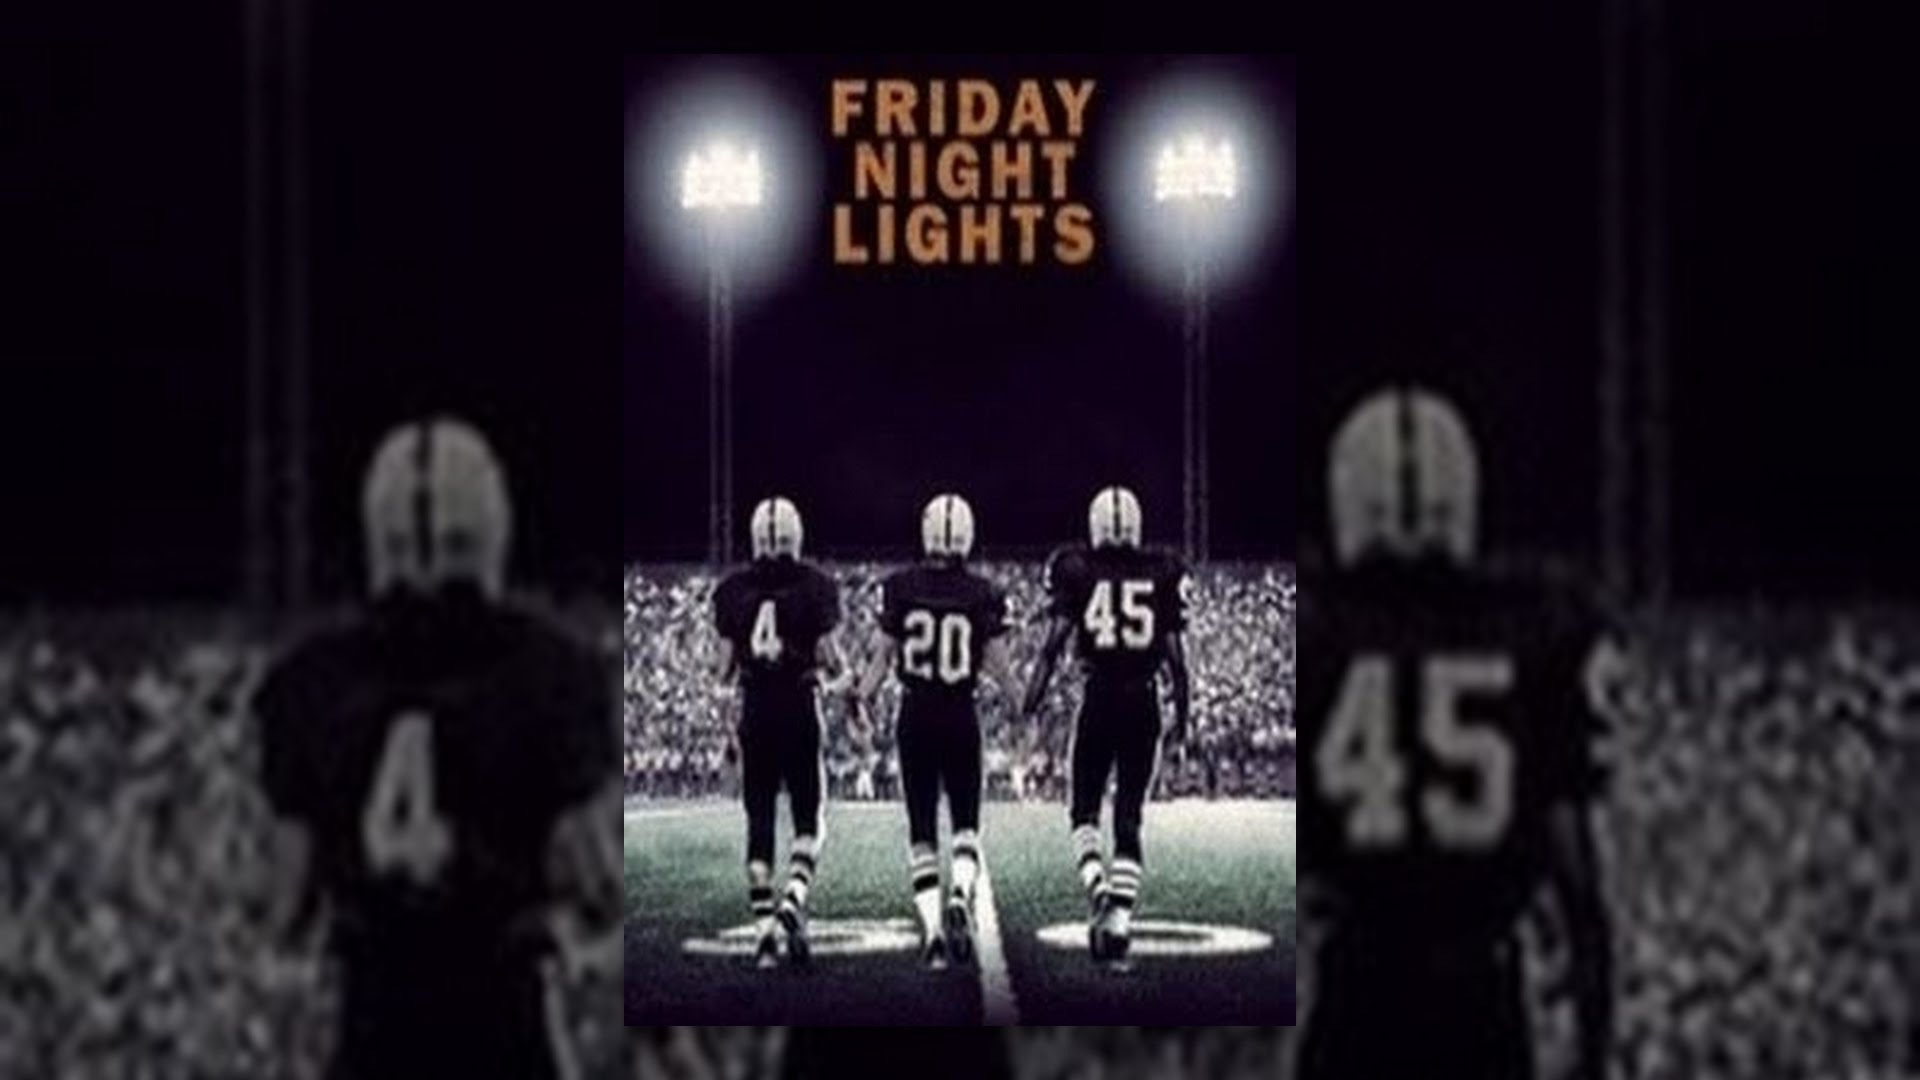 analysis of friday night lights Friday night lights is adapted from a book and film of the same name the book by hg bissinger chronicled the lives and times of a high school football team in west.